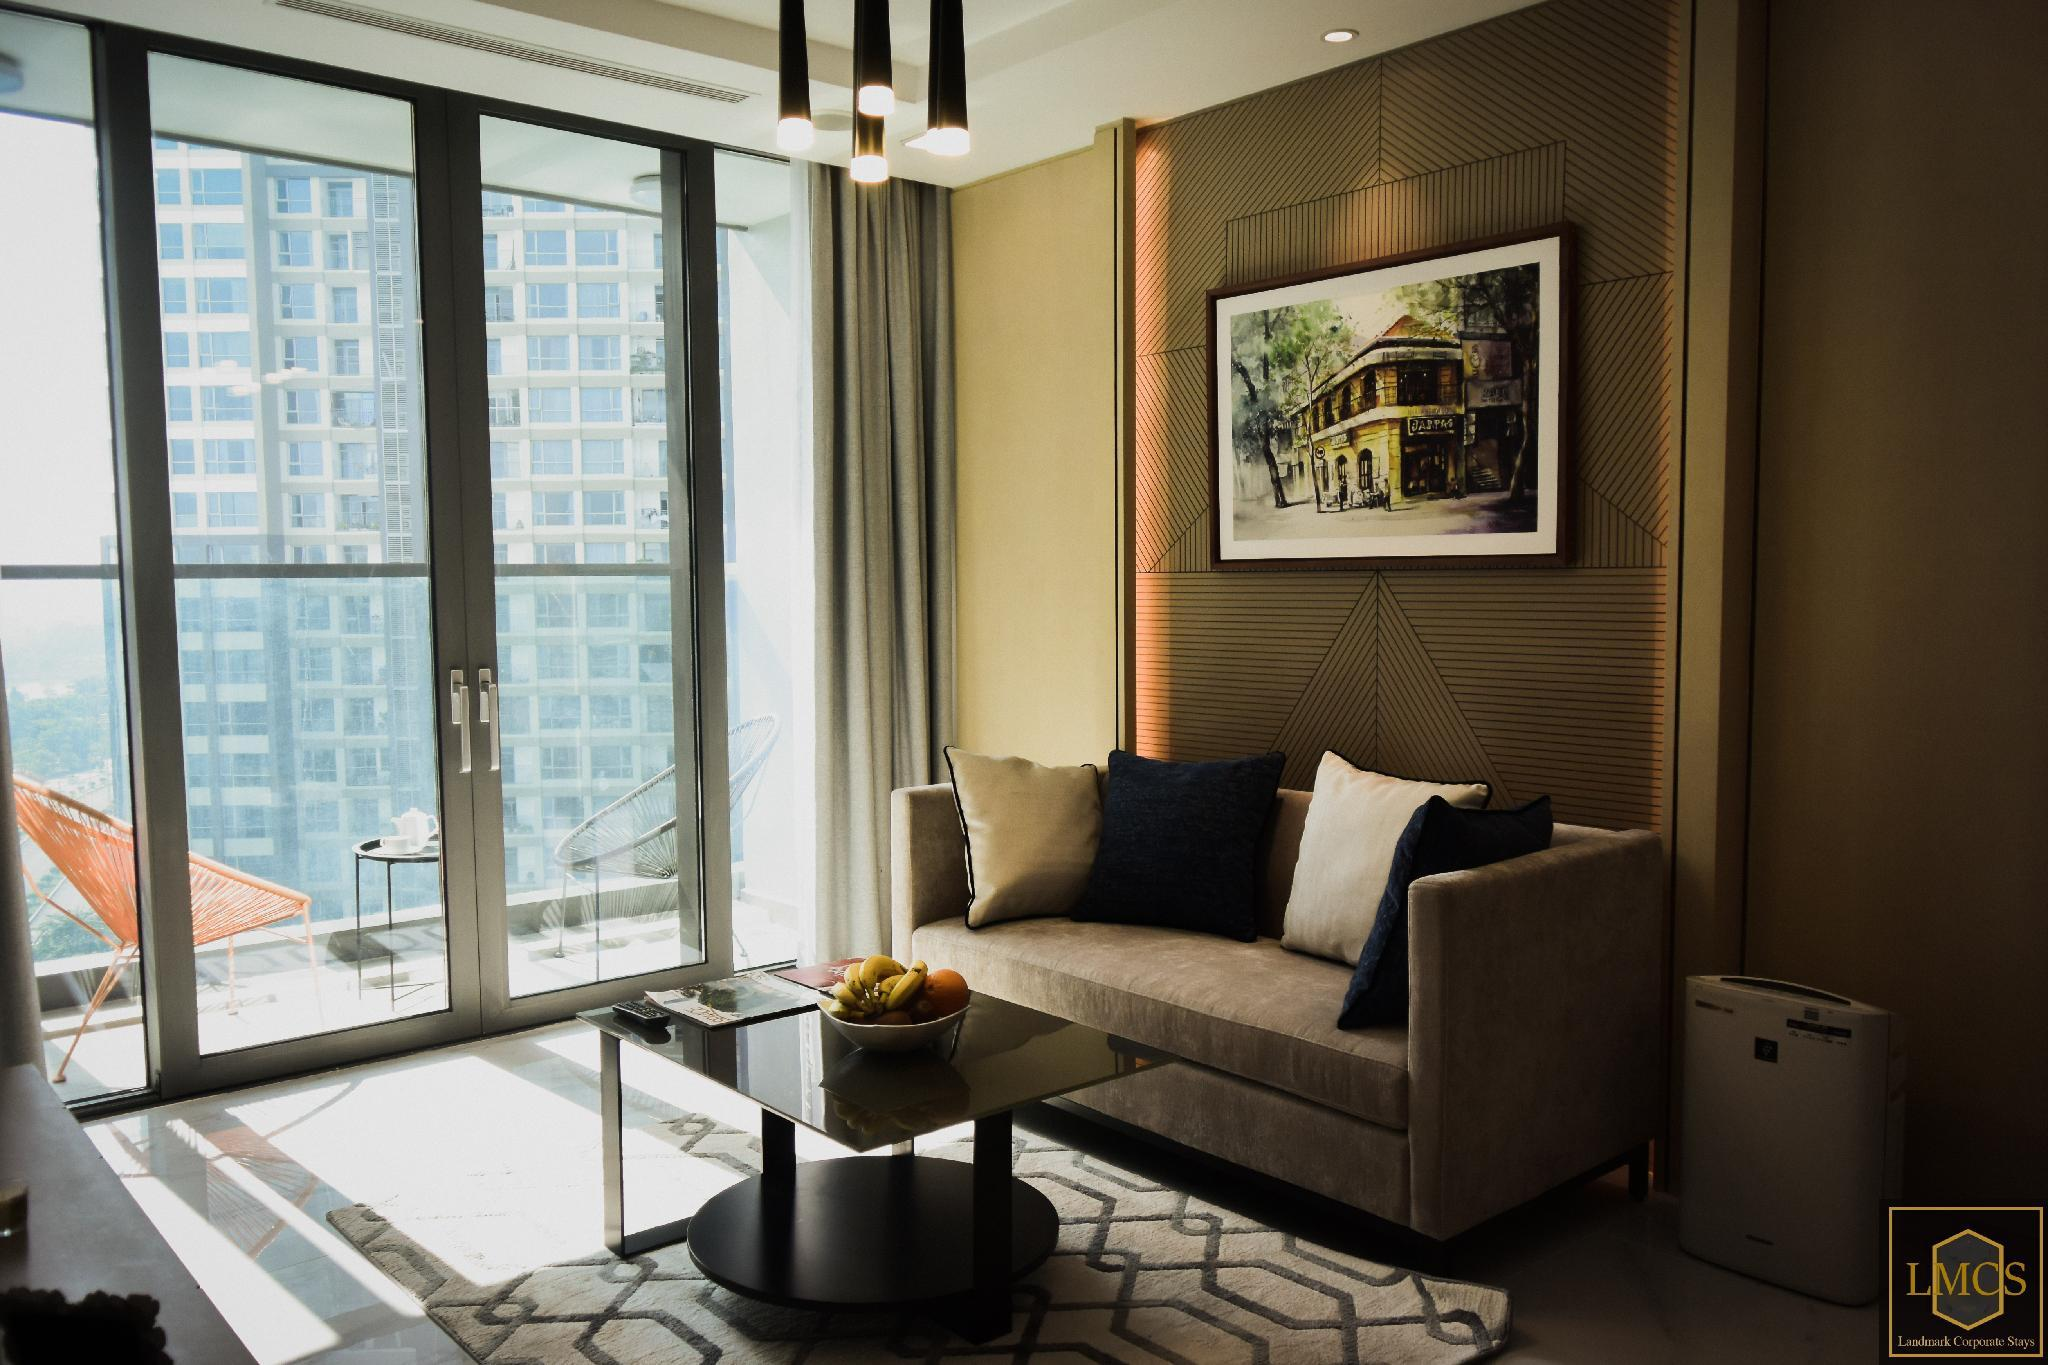 Deluxe 1BR Pool View Service Apartment  06 12